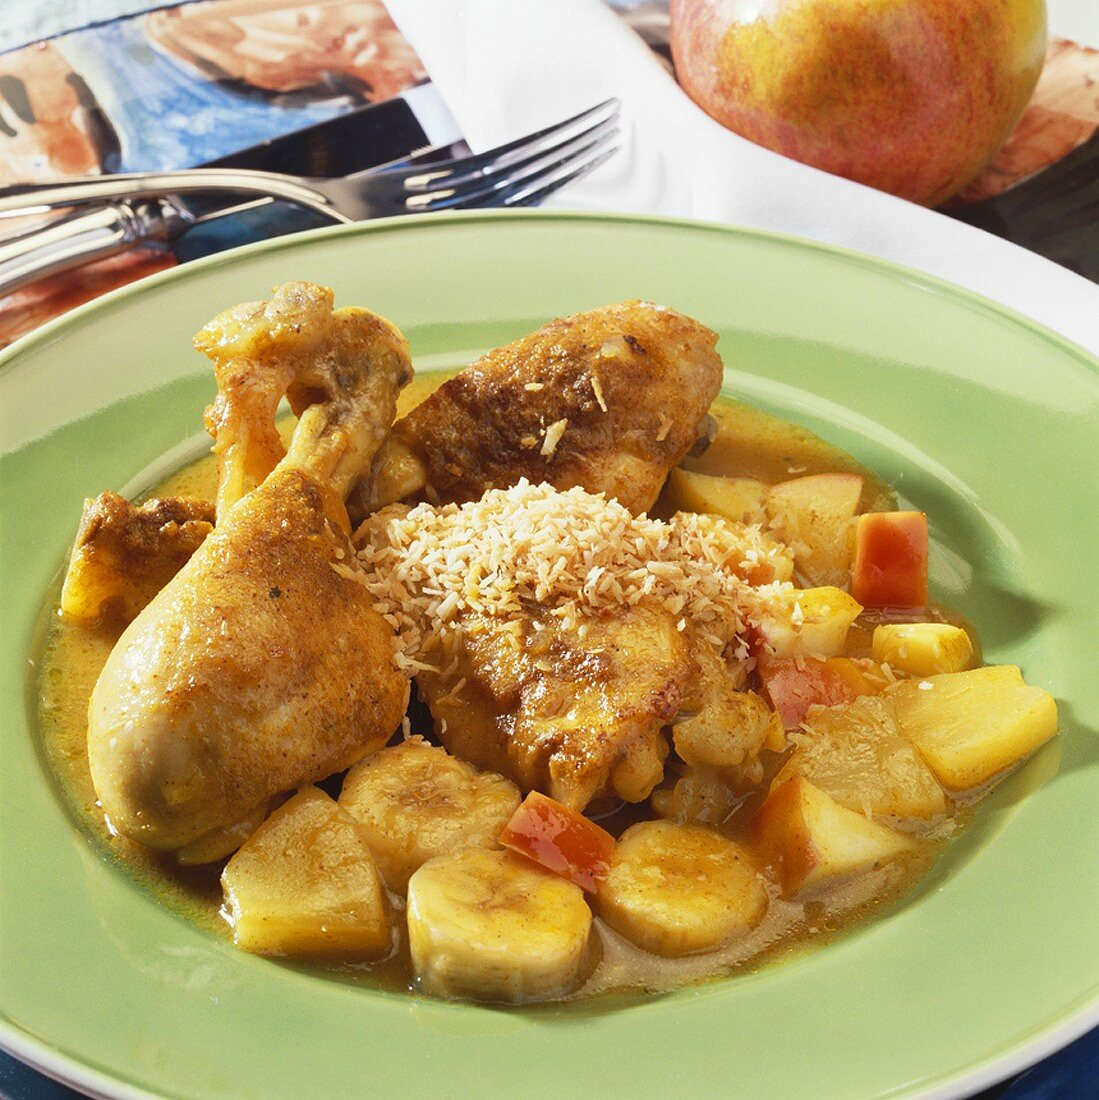 Curried chicken with grated coconut and fruit